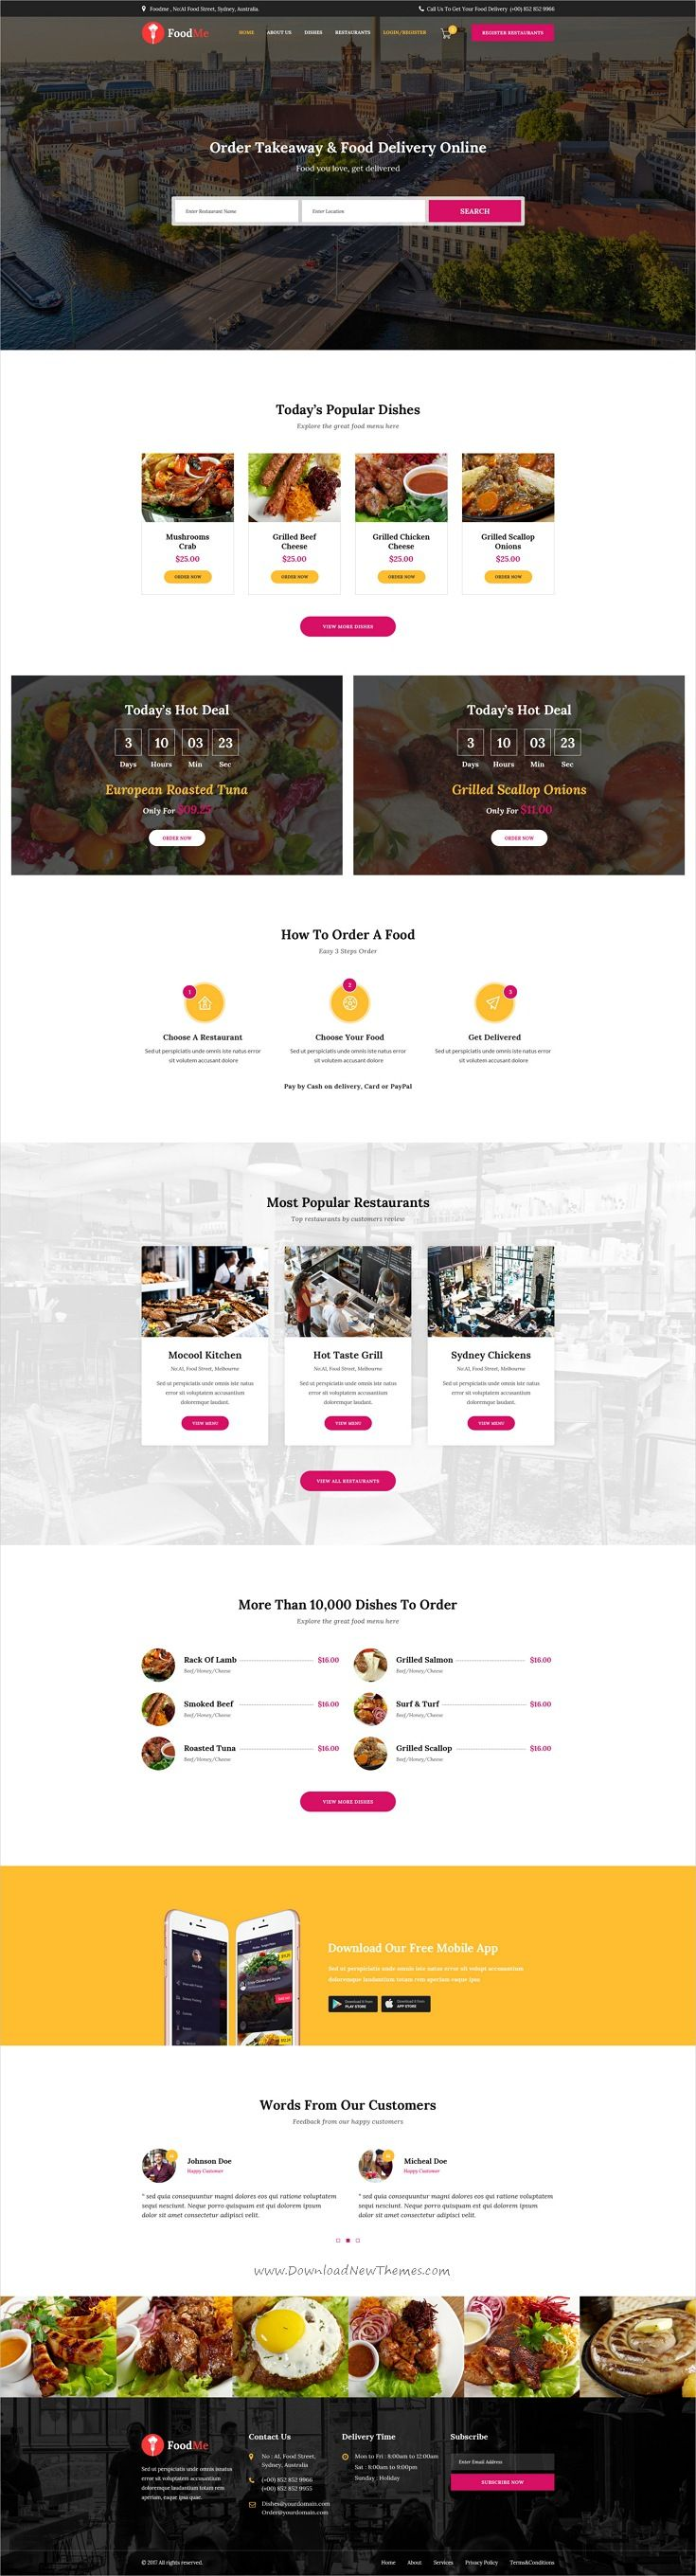 Foodme Is Clean And Modern Design Psd Template For Food Delivery